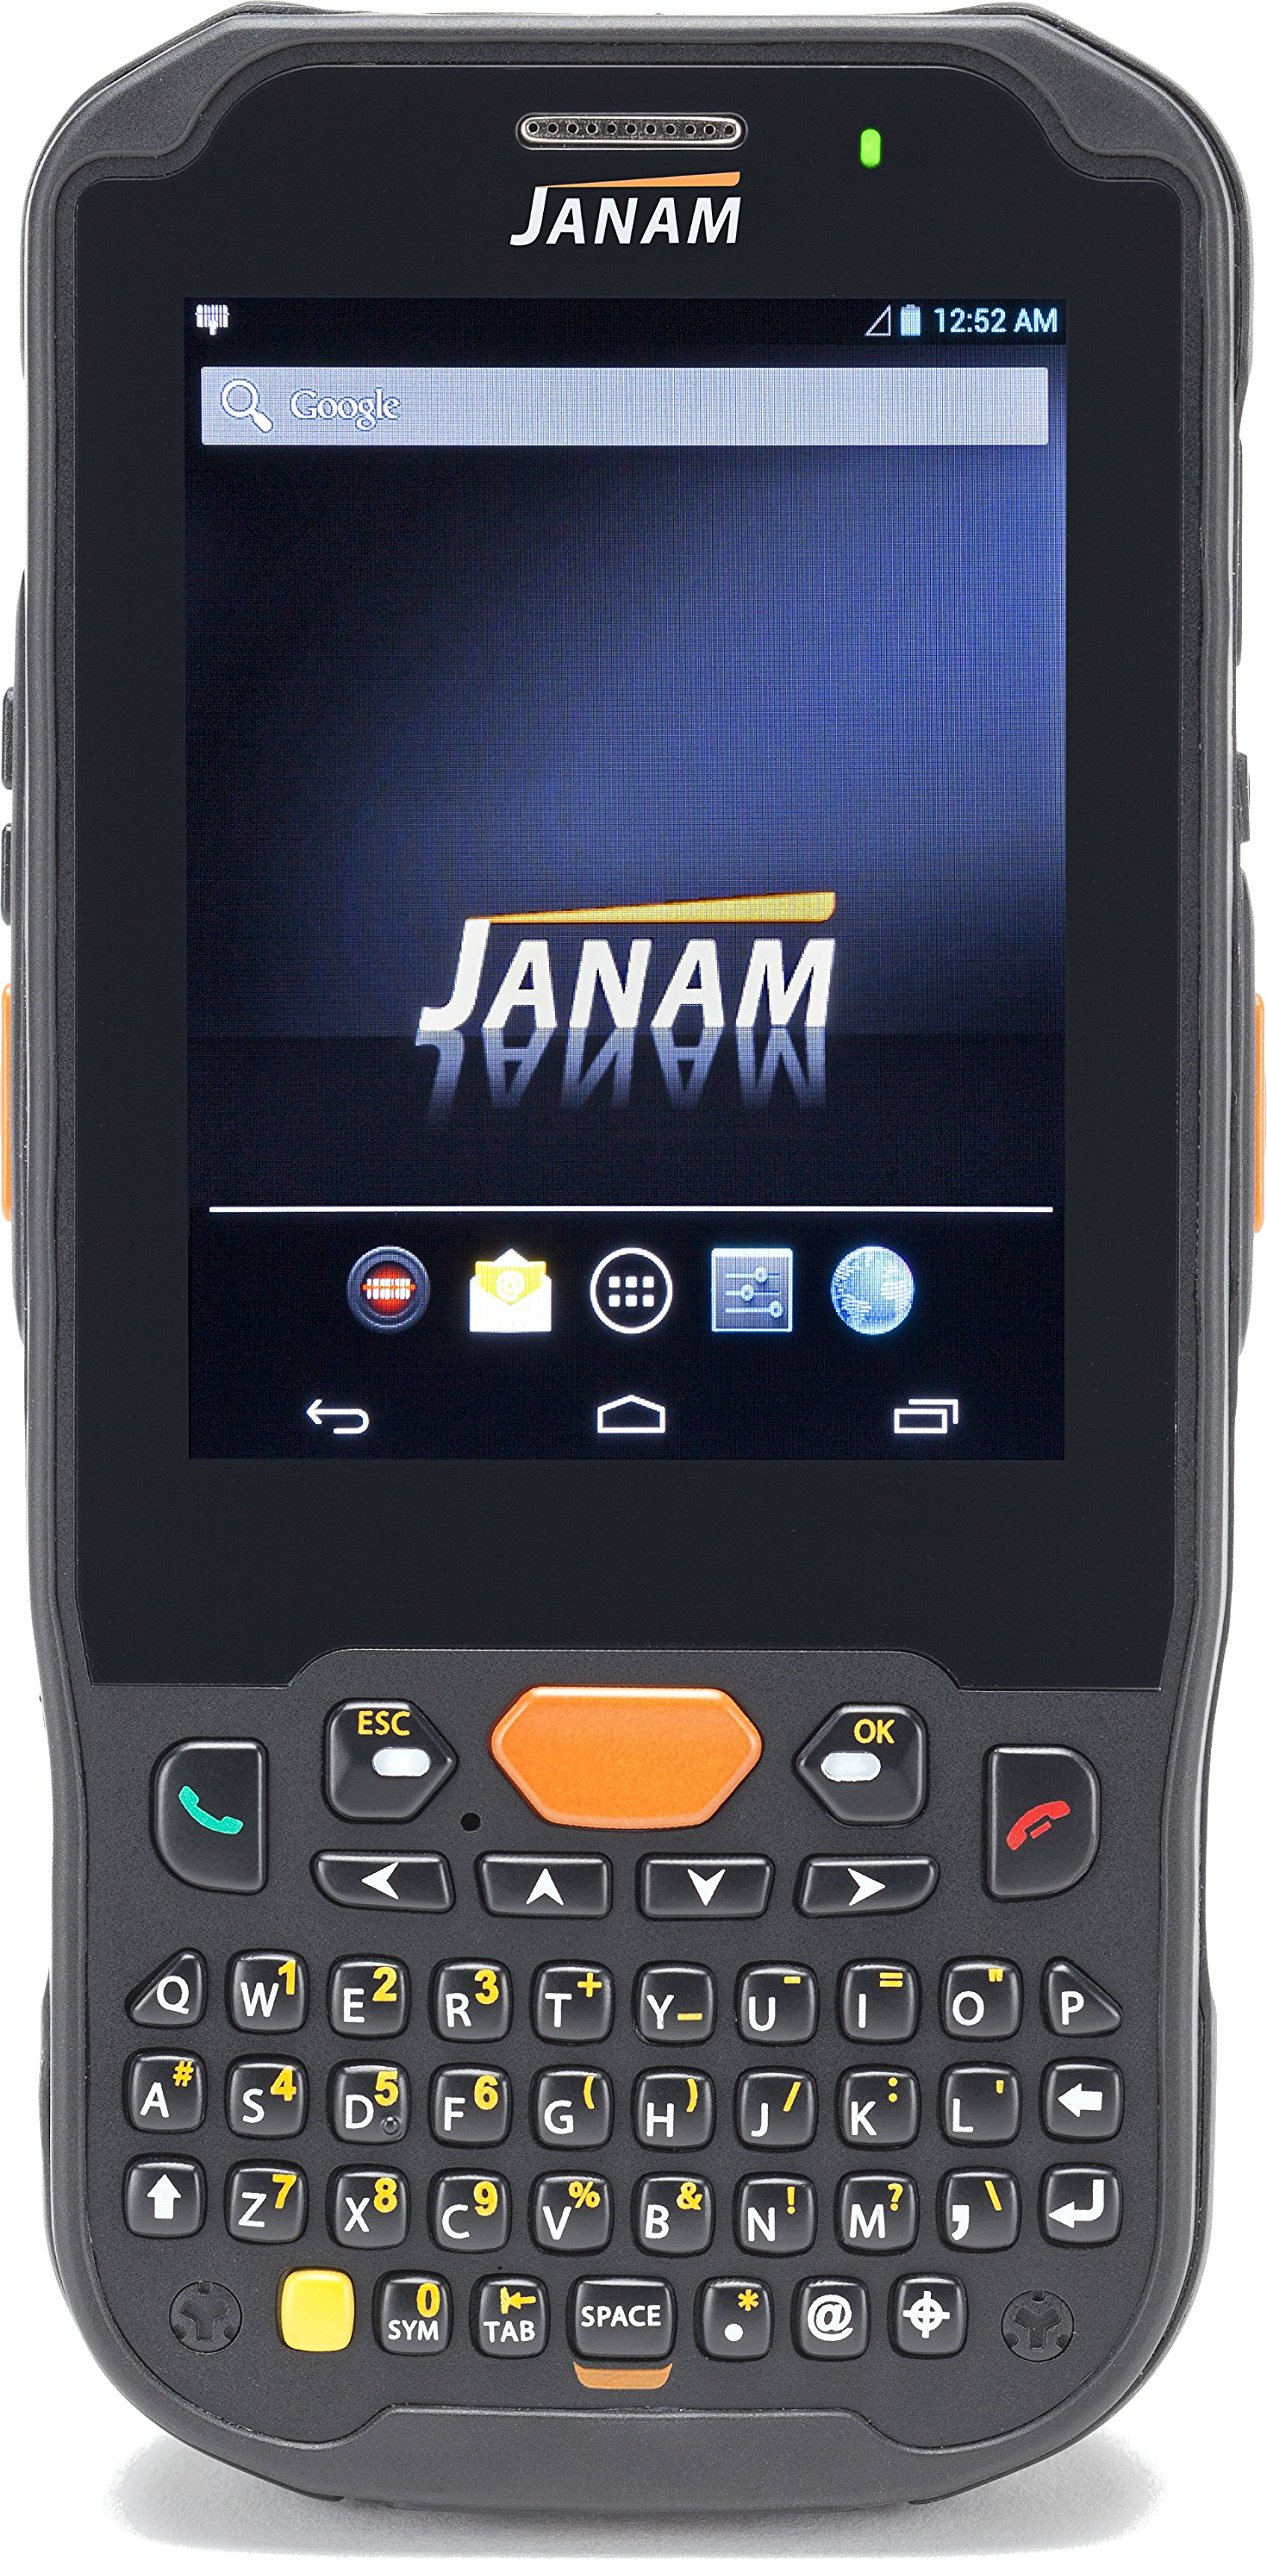 Janam XM5-1QXLNDNV00 Series XM5 Handheld Computing Devices, WEH 6.5, 2D Imager, Camera, 4000 mAh, Qwerty Keypad